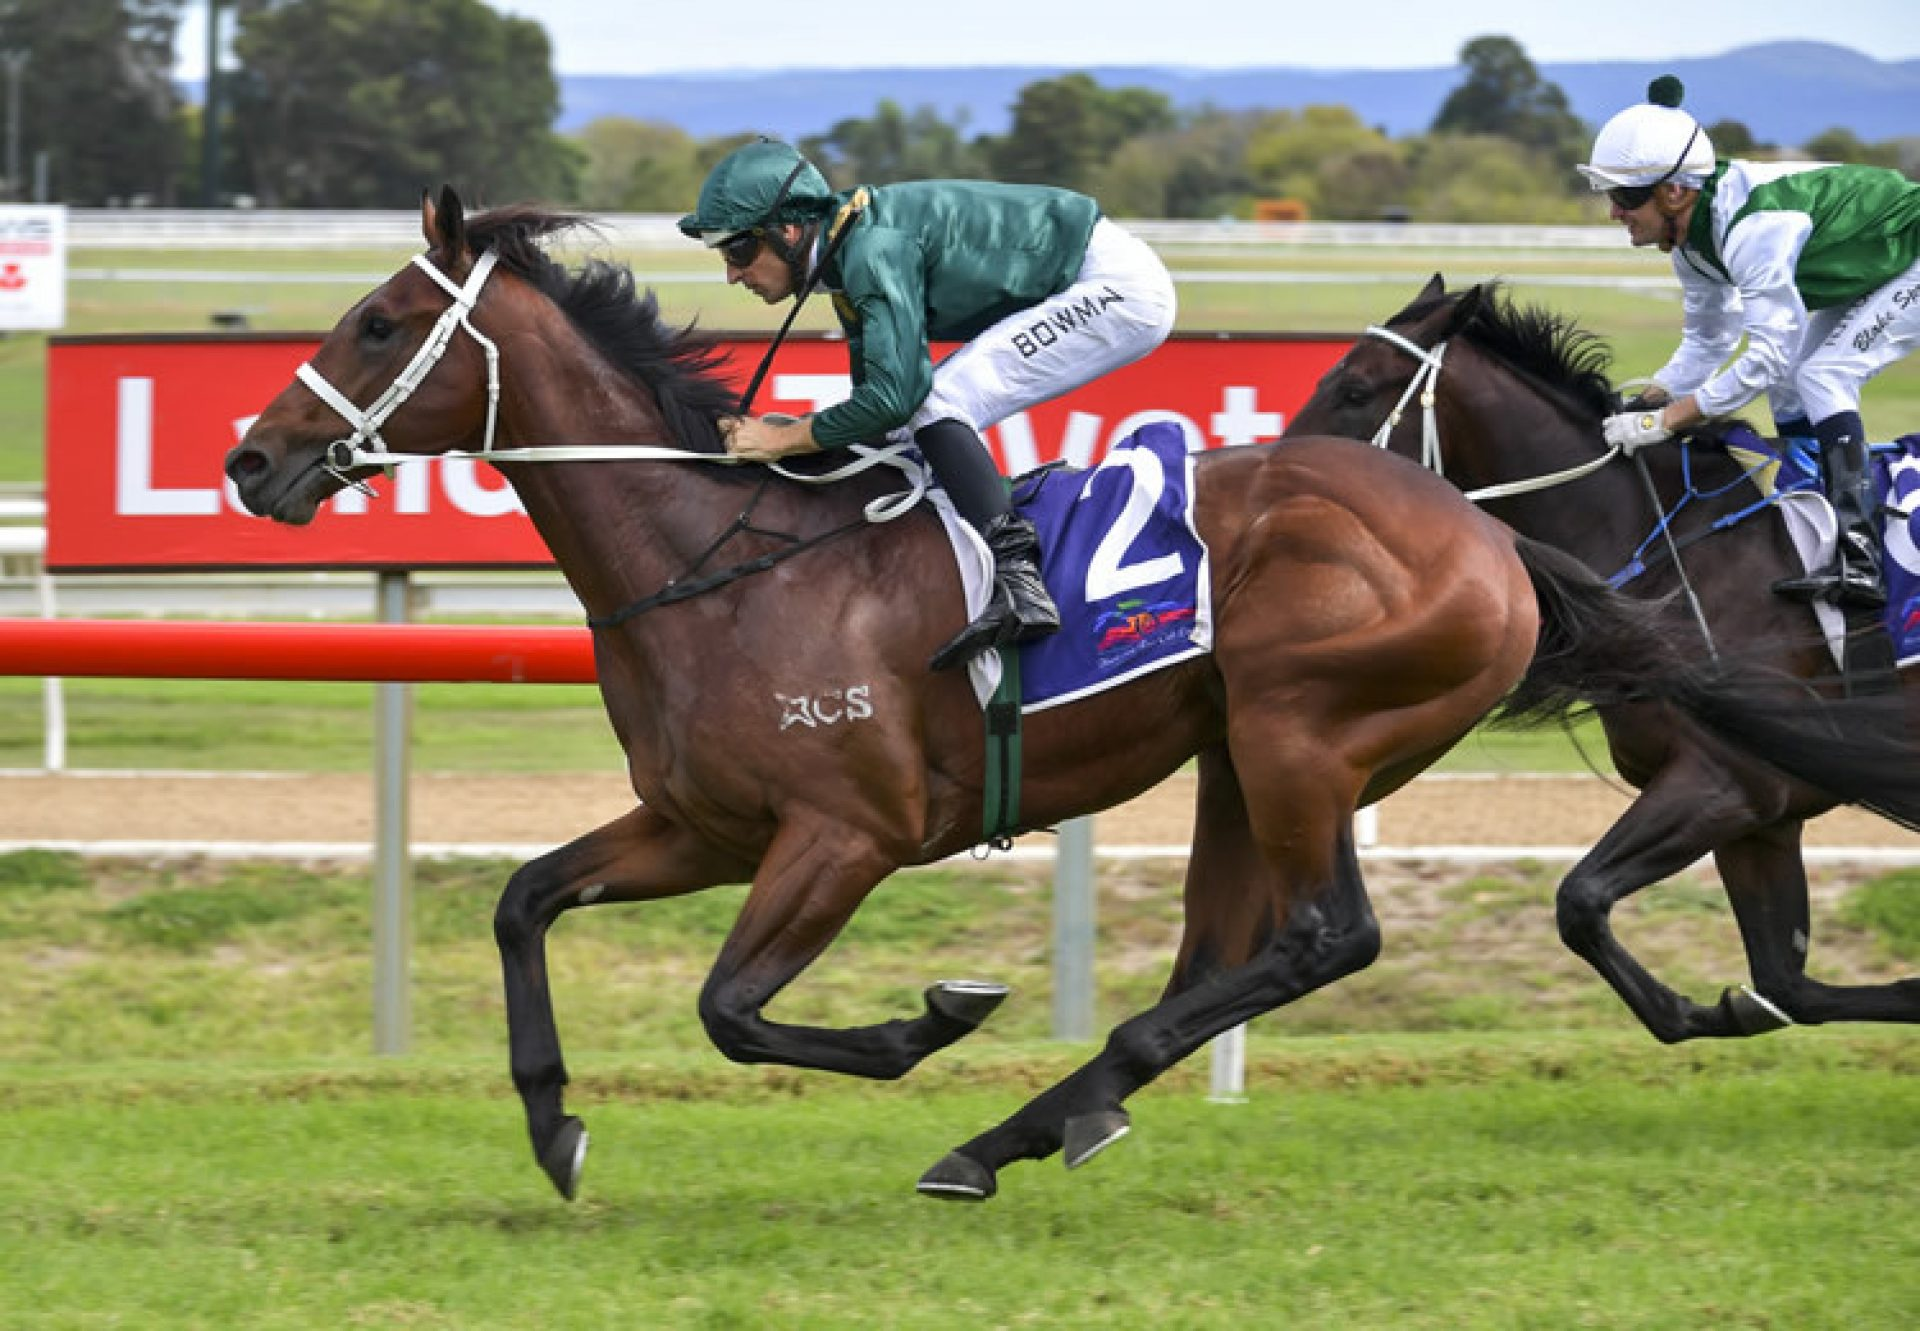 Aslav (Vancouver) winning at Hawkesbury